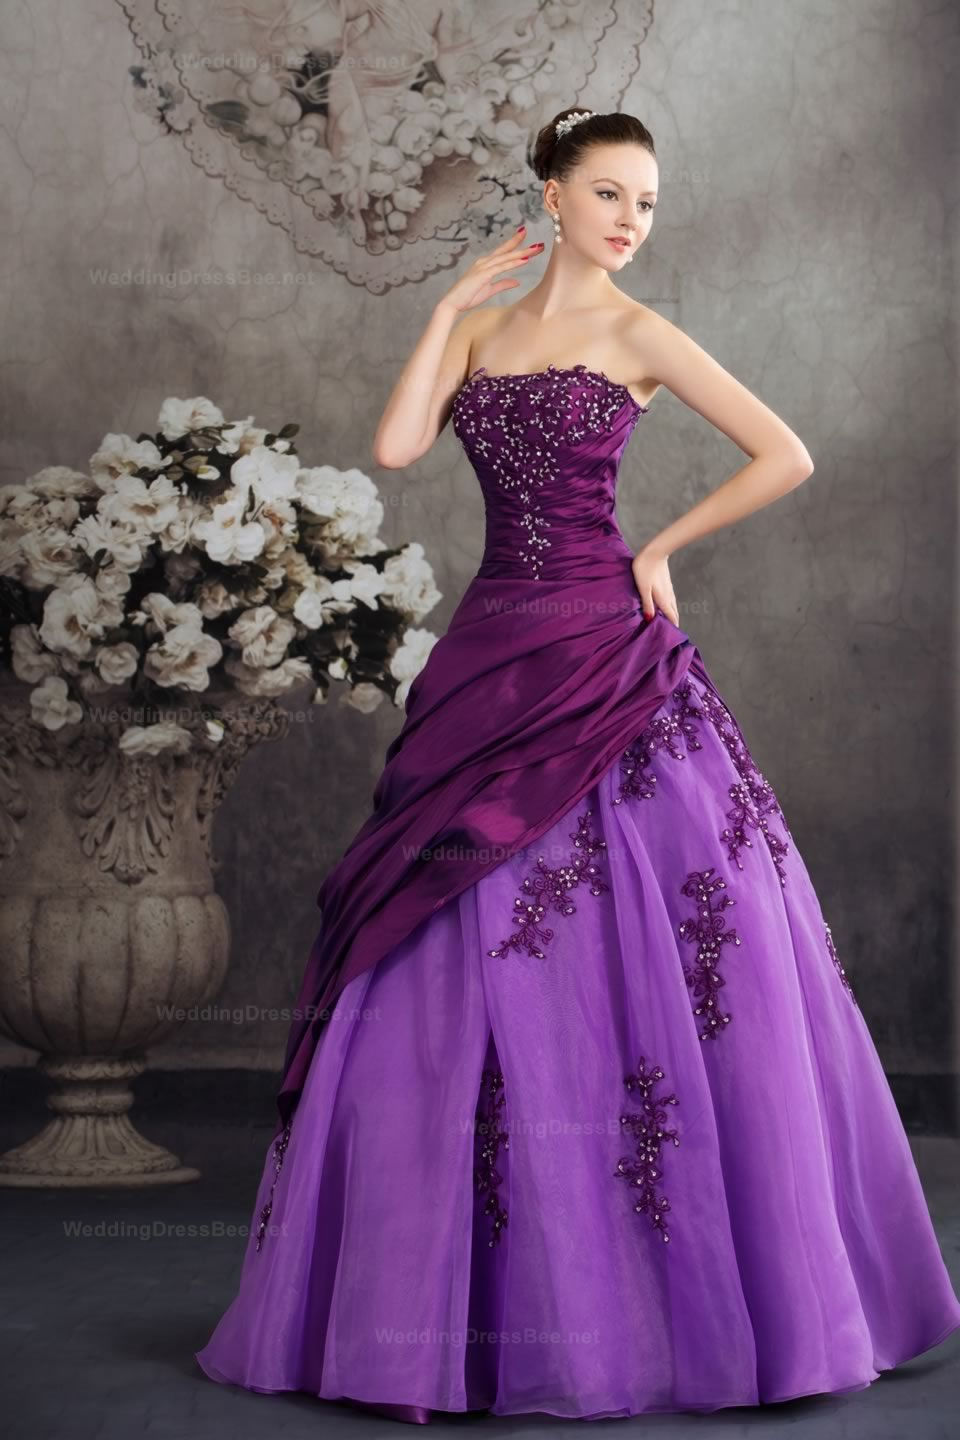 Fantastic lace appliques detailed taffeta over organza ball gown